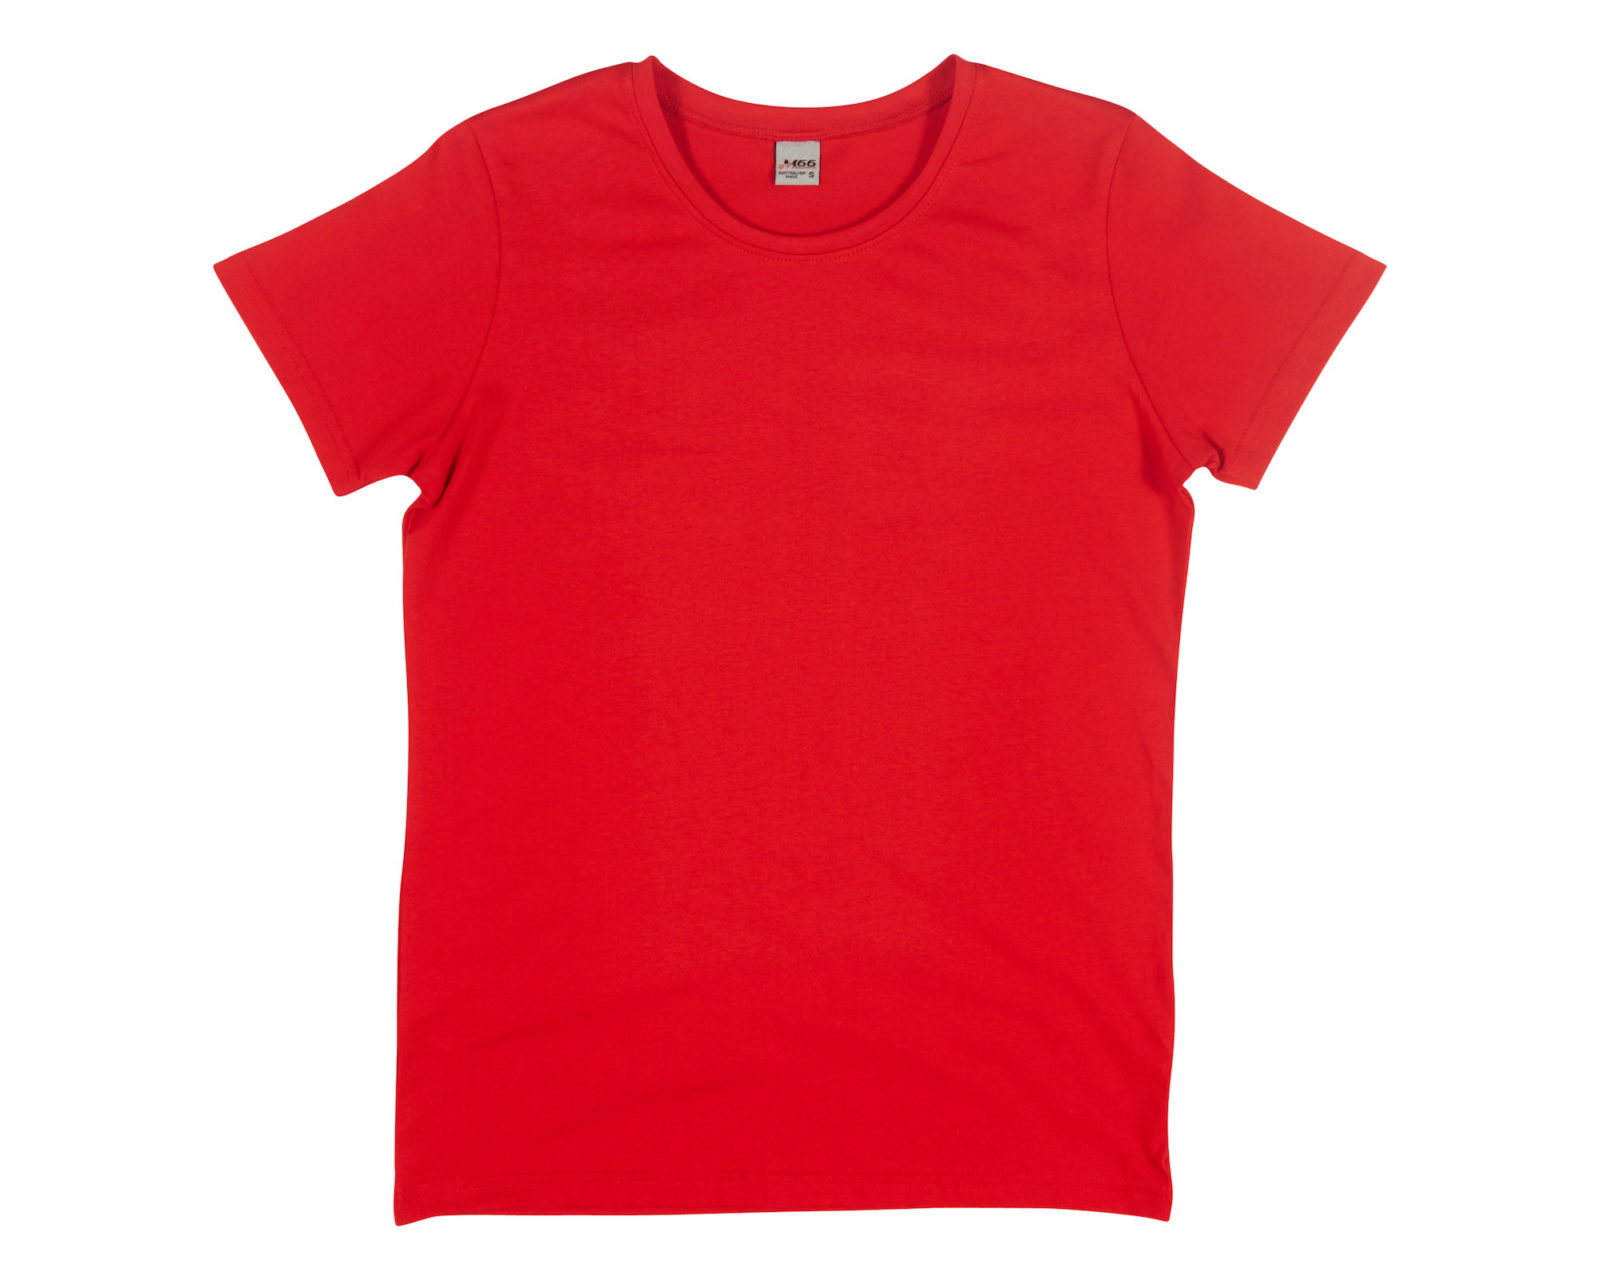 Qualitops Womens Short Sleeve classic Tee Australian made